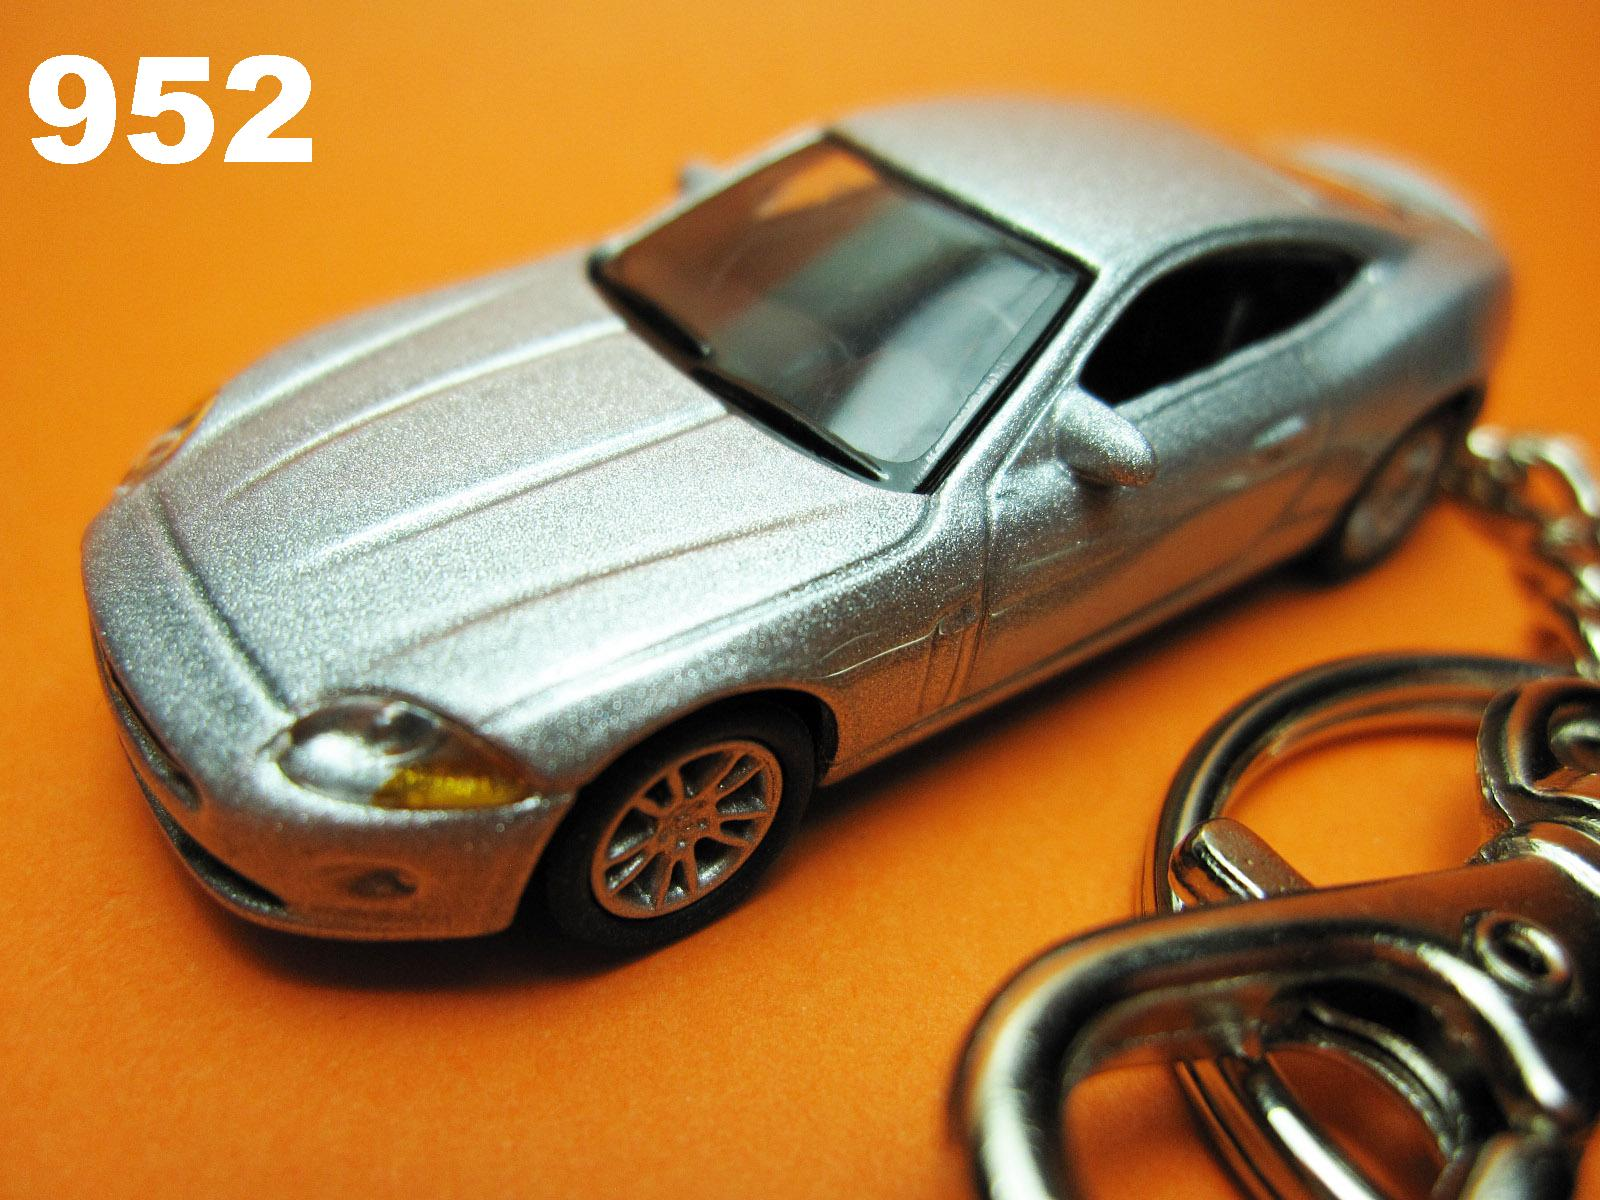 Jaguar XK Coupe (Silver) Die-cast Key Chain